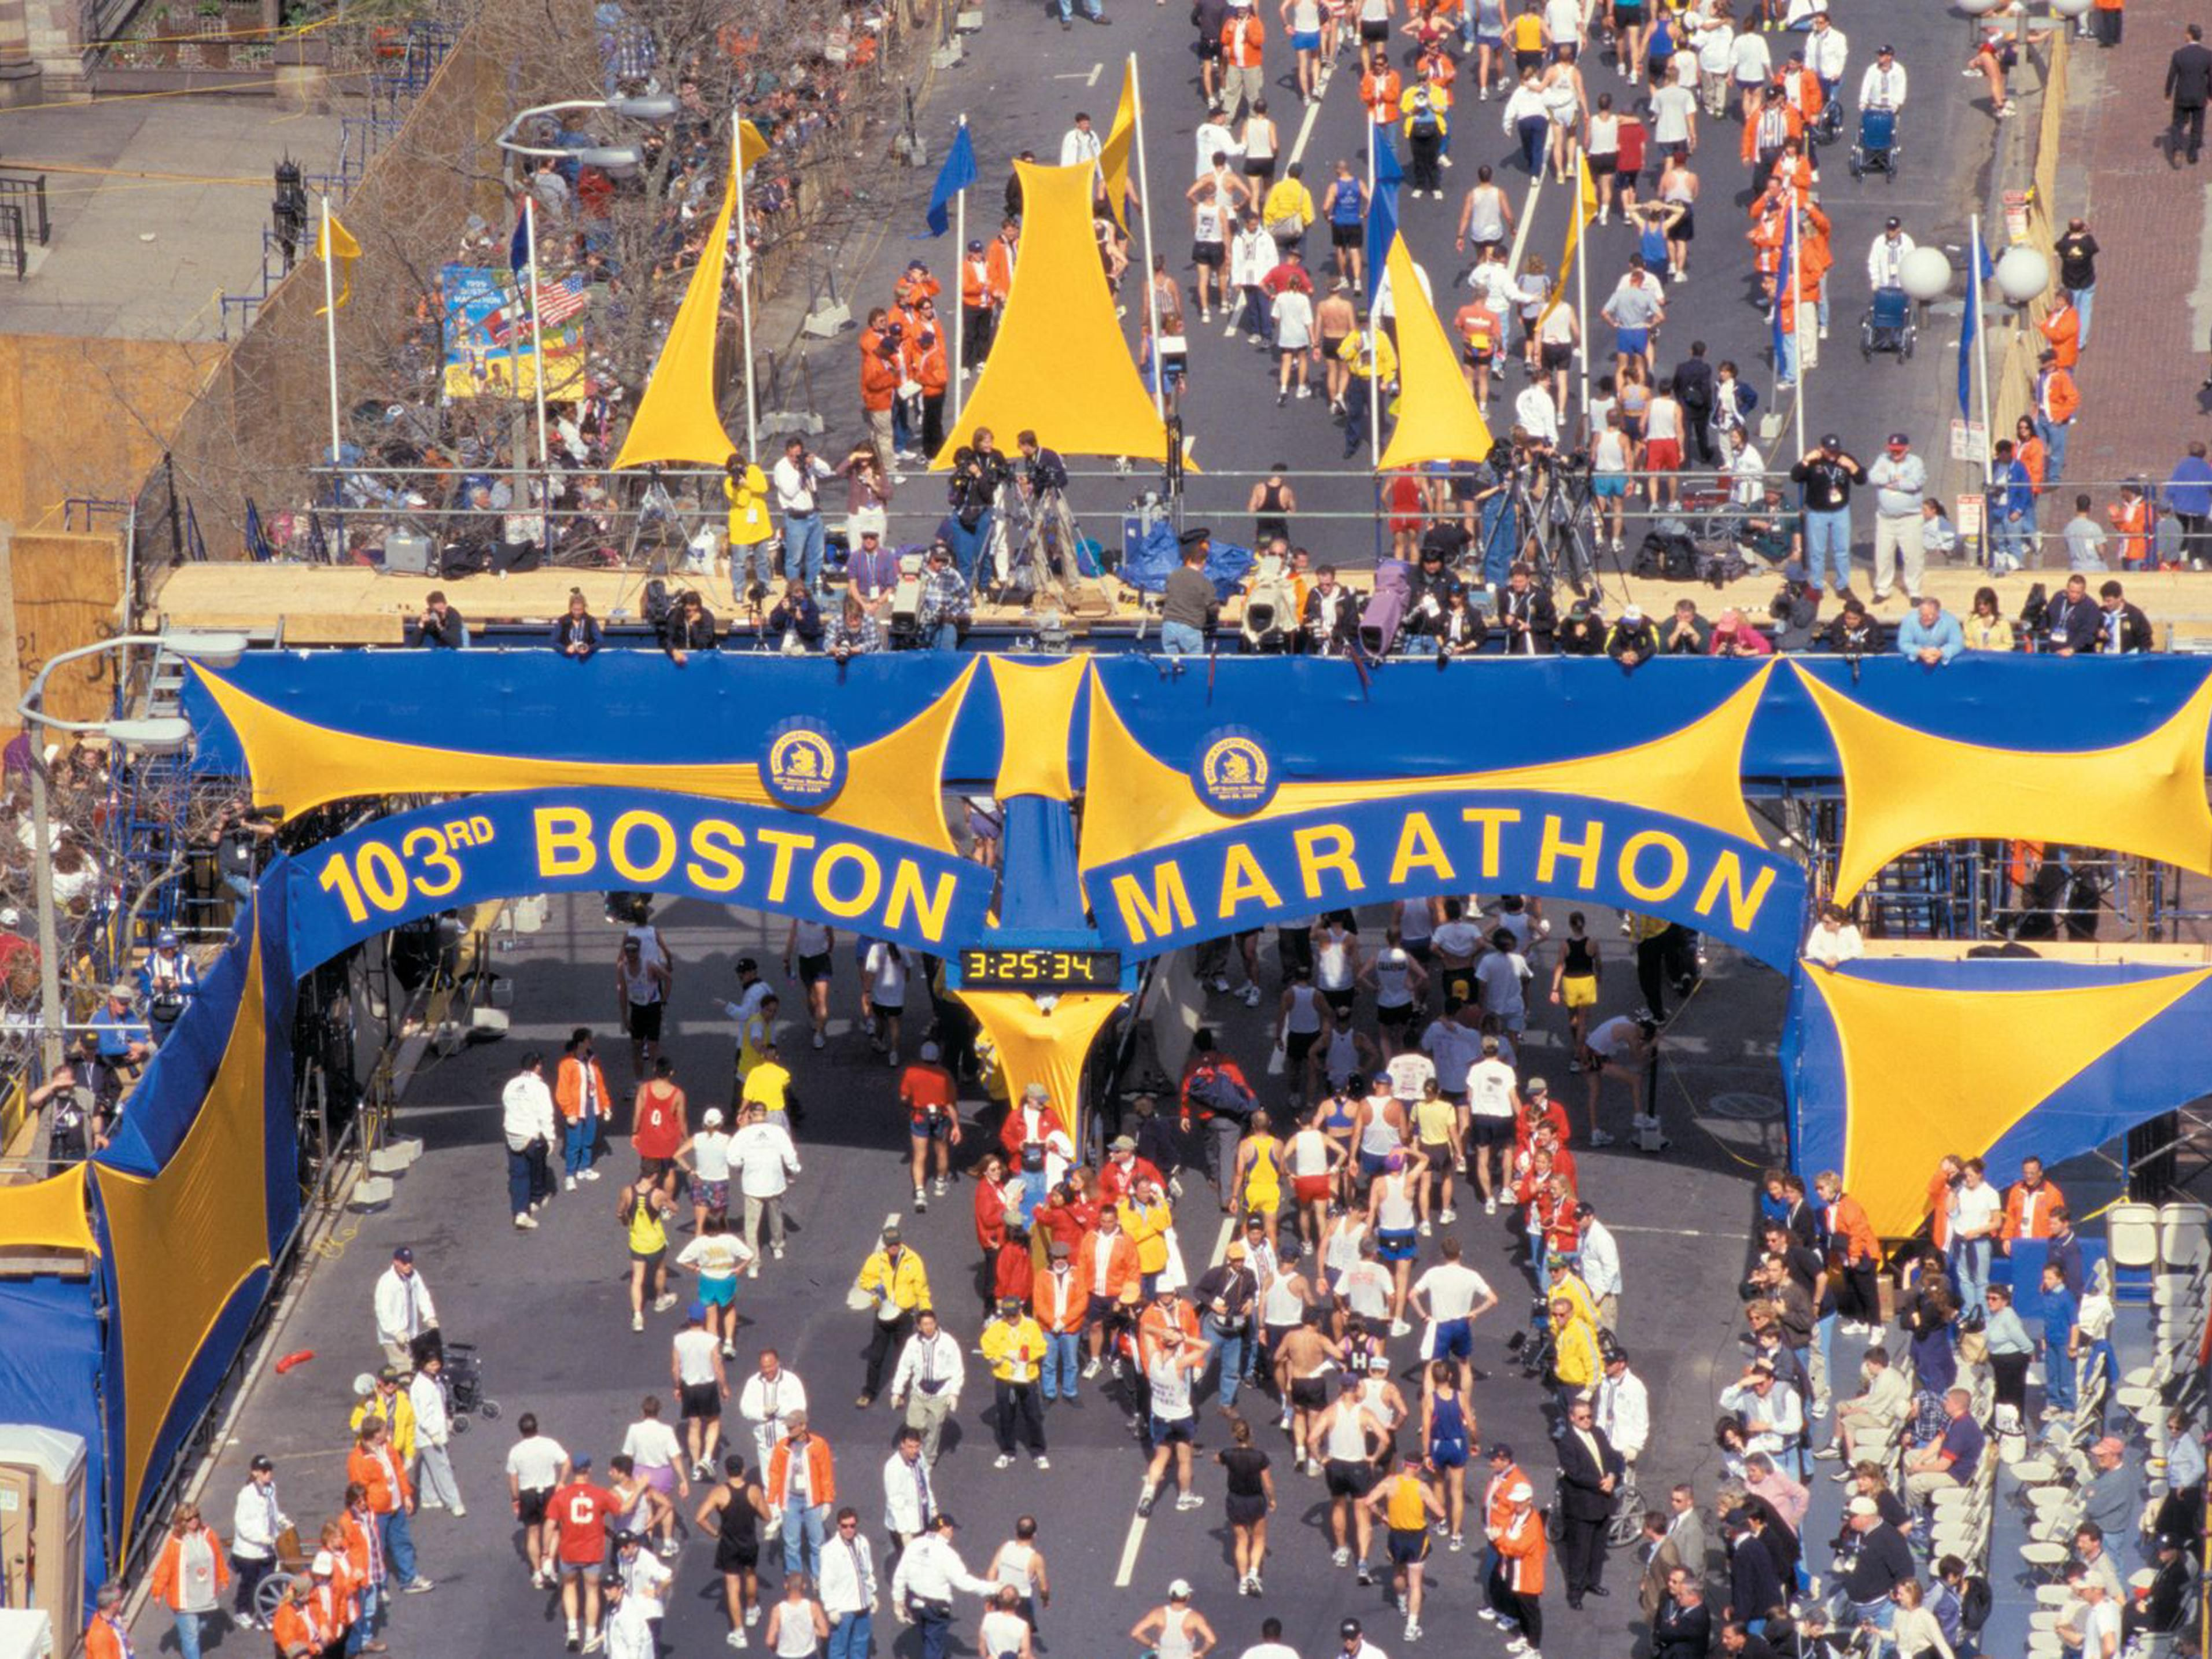 The annual Boston Marathon finish line is just under 5 miles away.